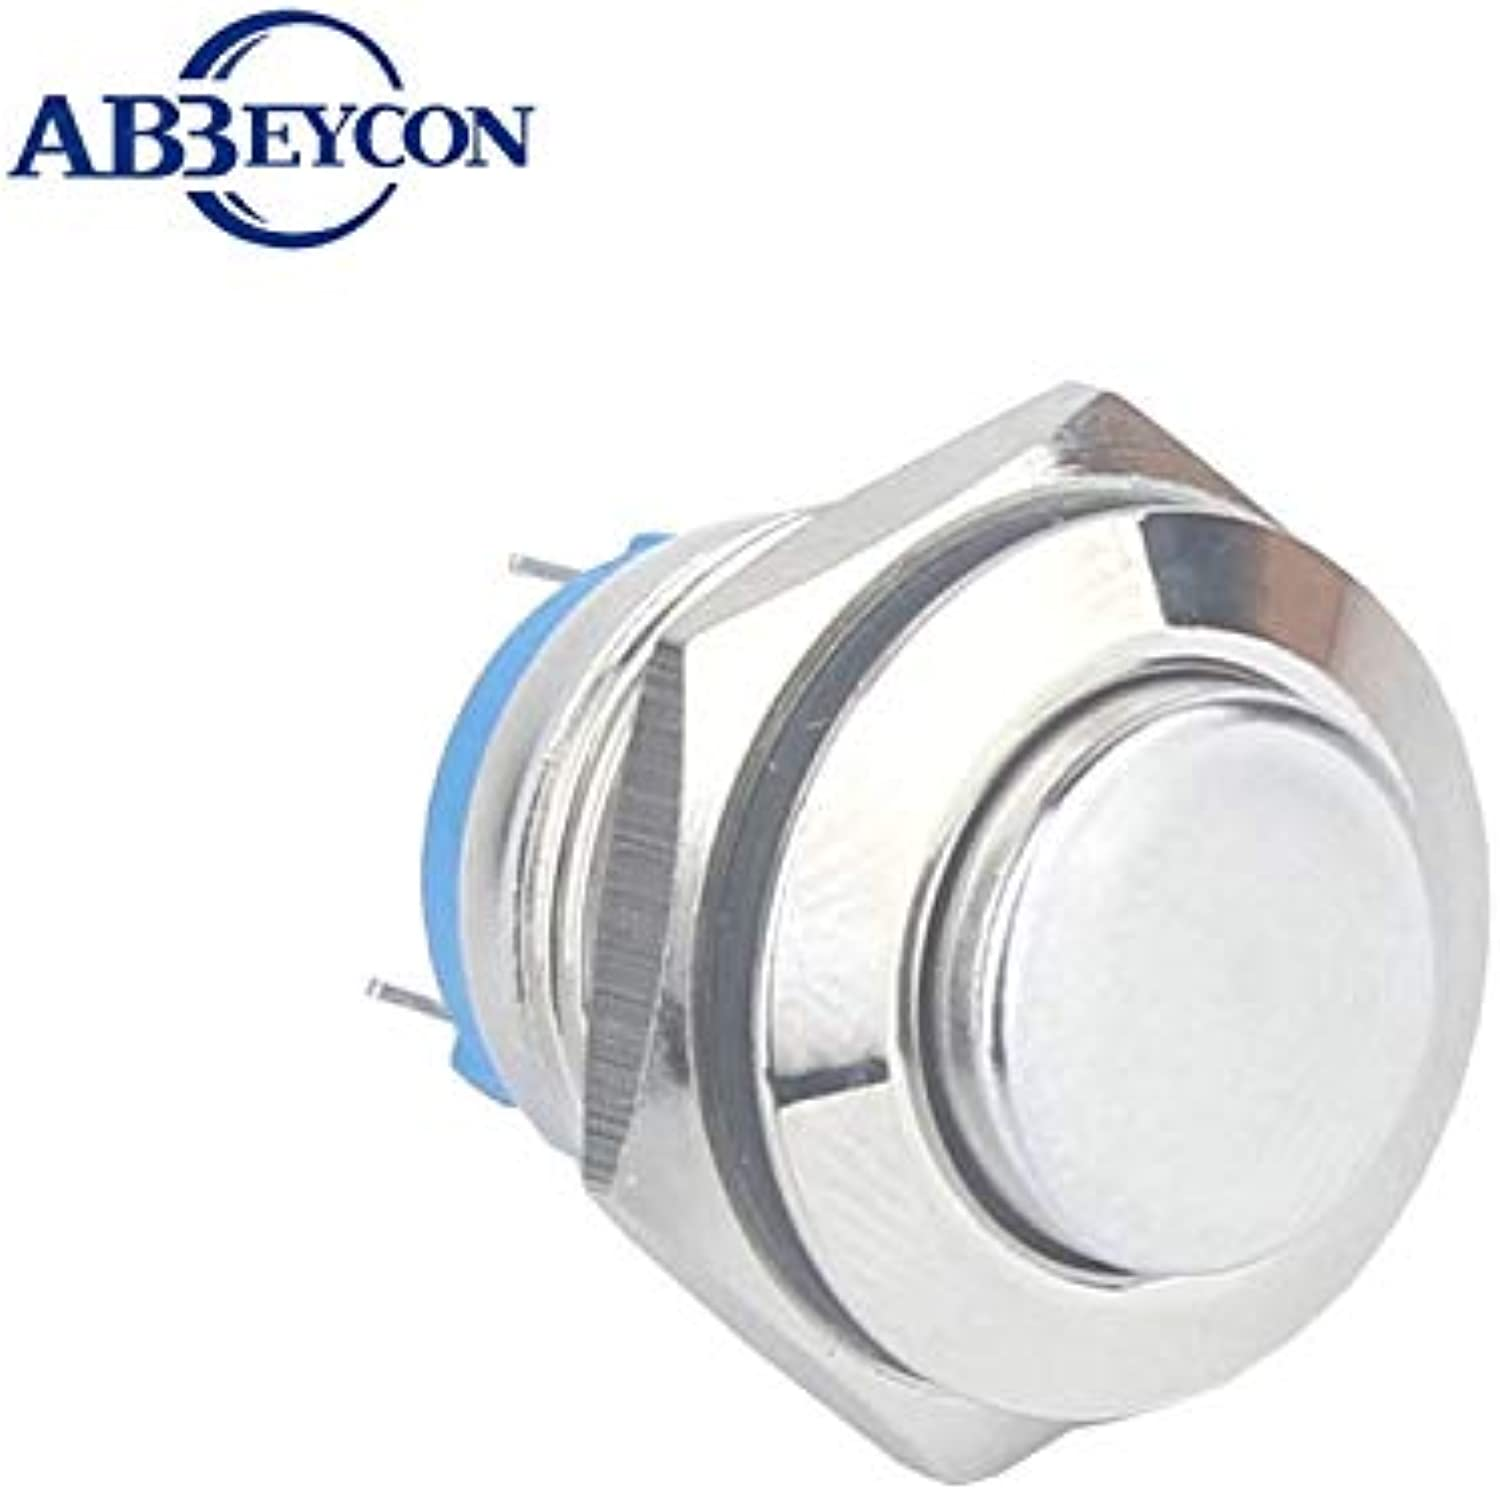 5pcs Lot IB 1607 Lowest Price 16mm High Round Head 220v momentary Function Brass nickled IP67 Waterproof Switch  (color  Silver)